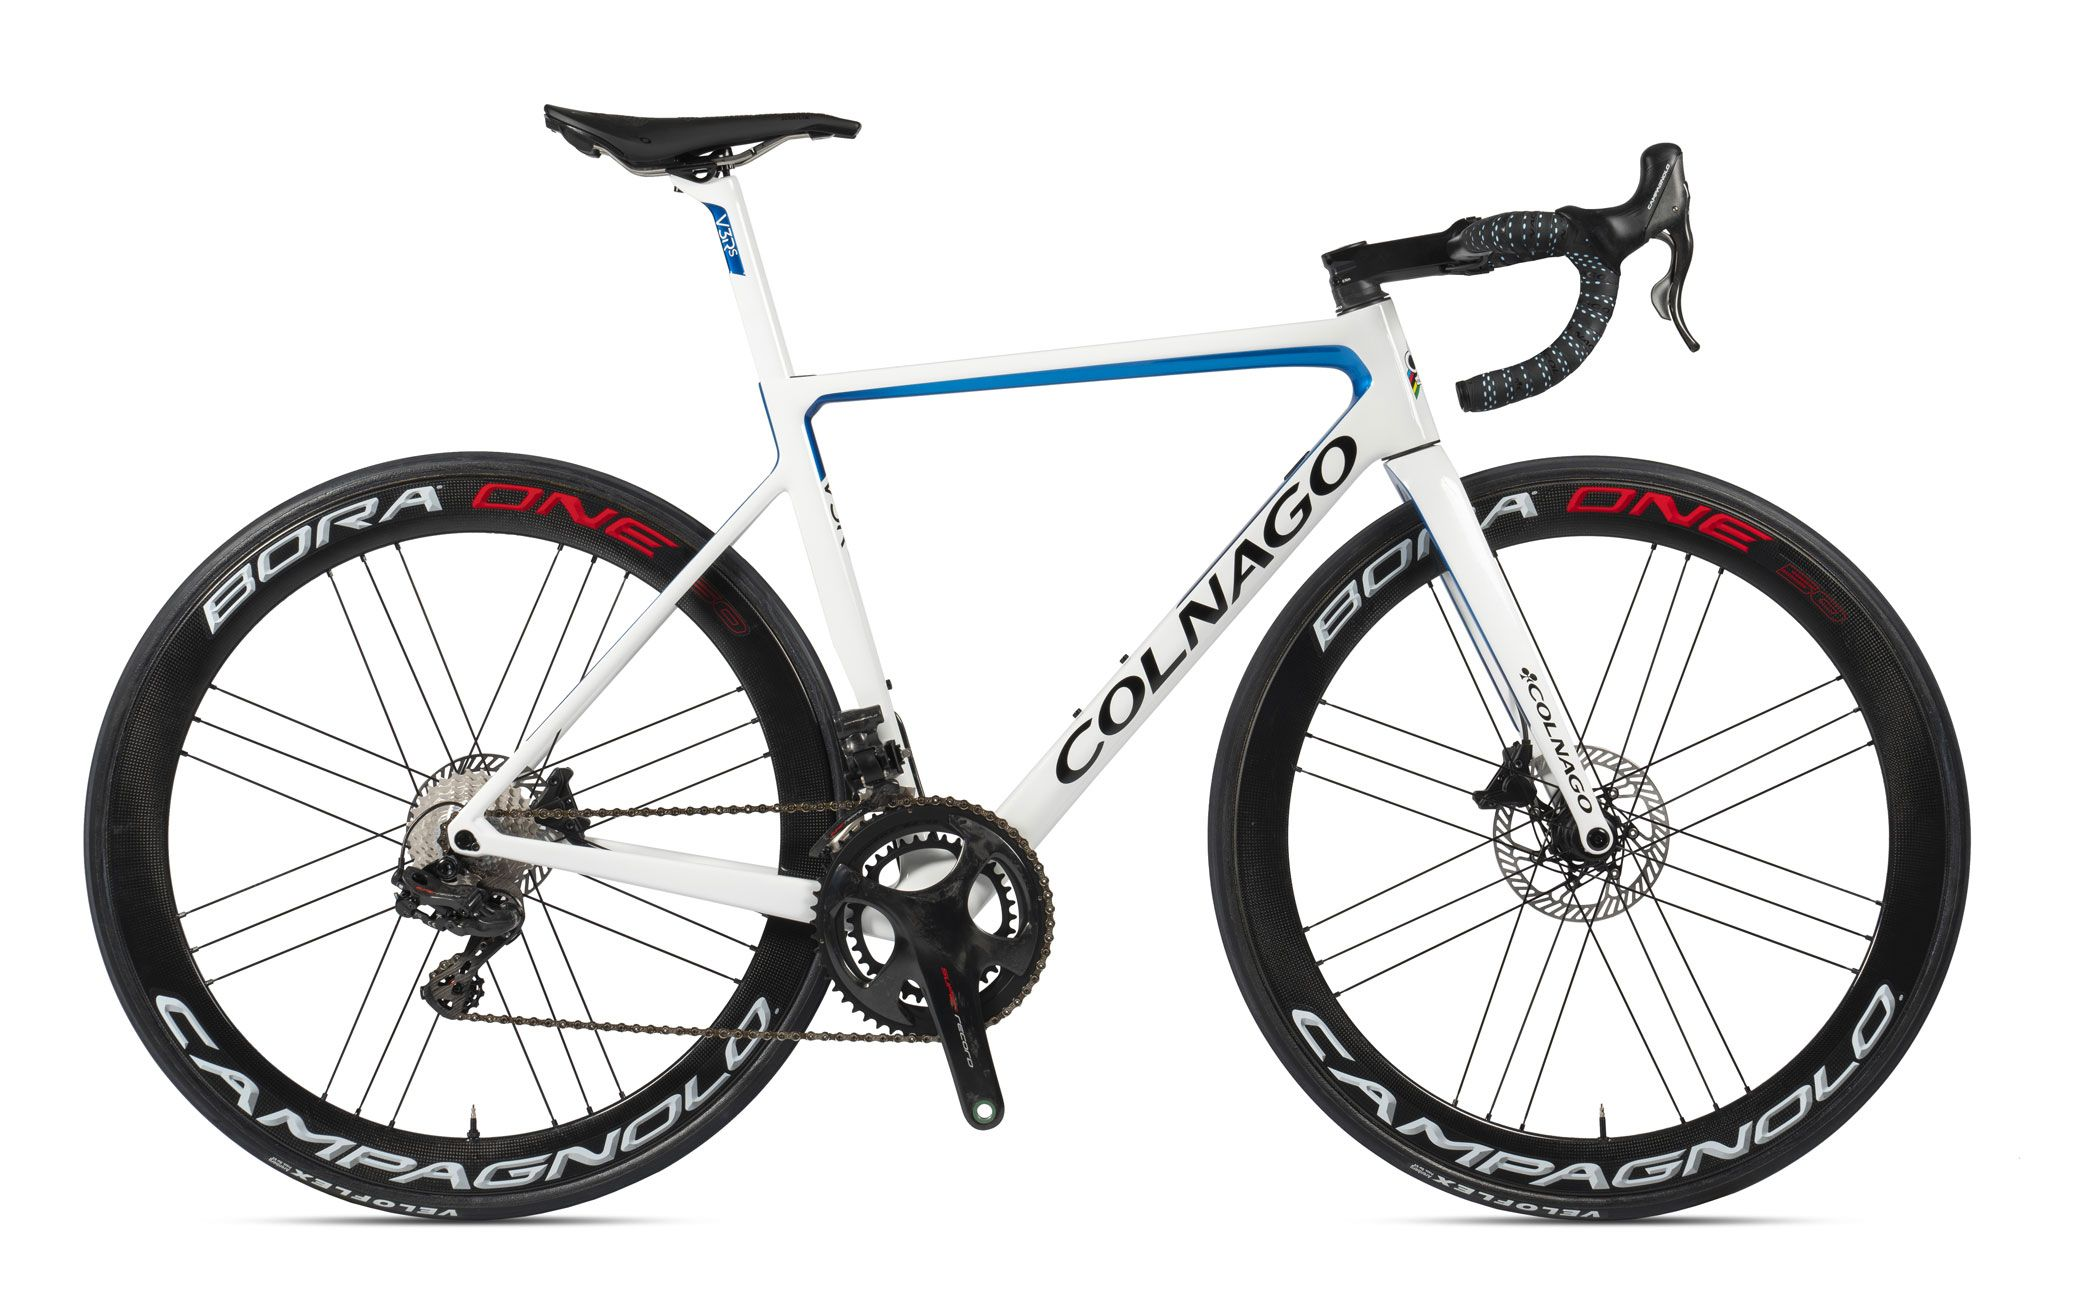 Road Bicycle V3rs Colnago The Best Bikes In The World 2020